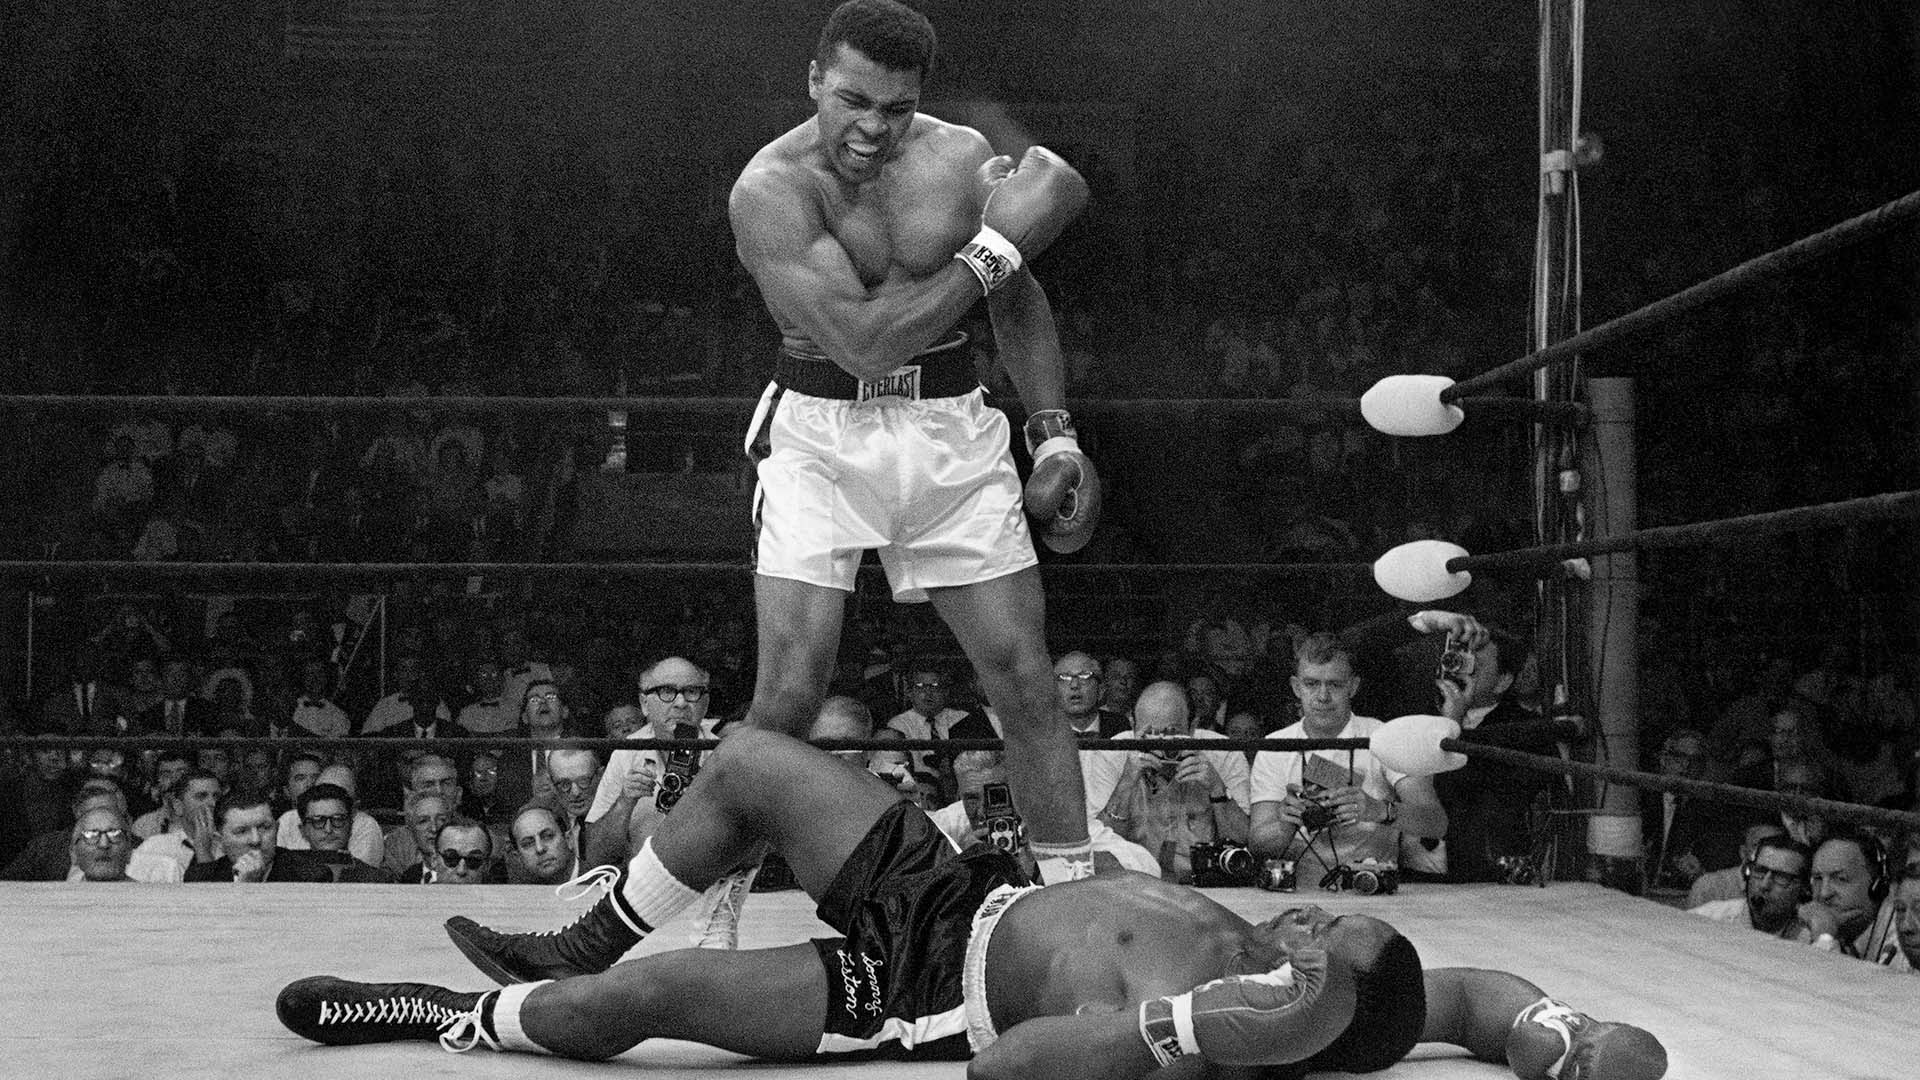 Muhammad Ali stands over fallen Sonny Liston, shouting and gesturing shortly after dropping Liston with a short hard right to the jaw in Lewiston, Maine. May 25, 1965.